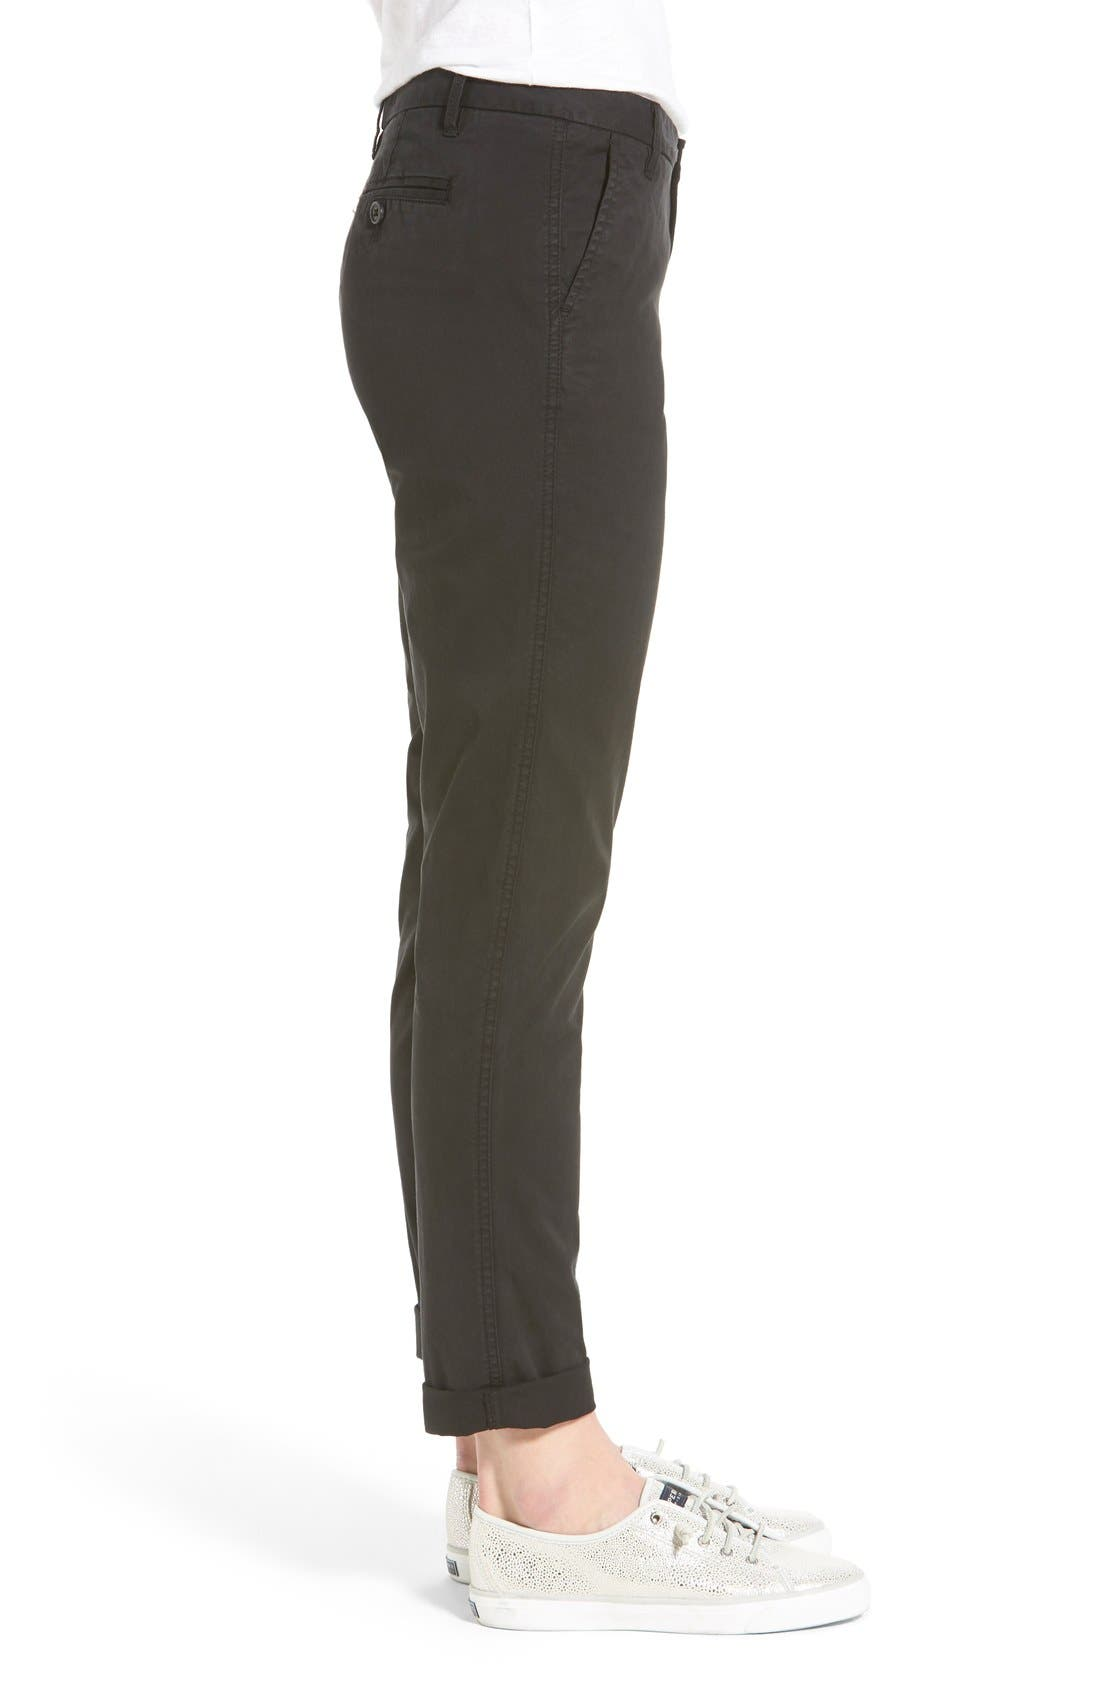 Chino Ankle Pants,                             Alternate thumbnail 2, color,                             001